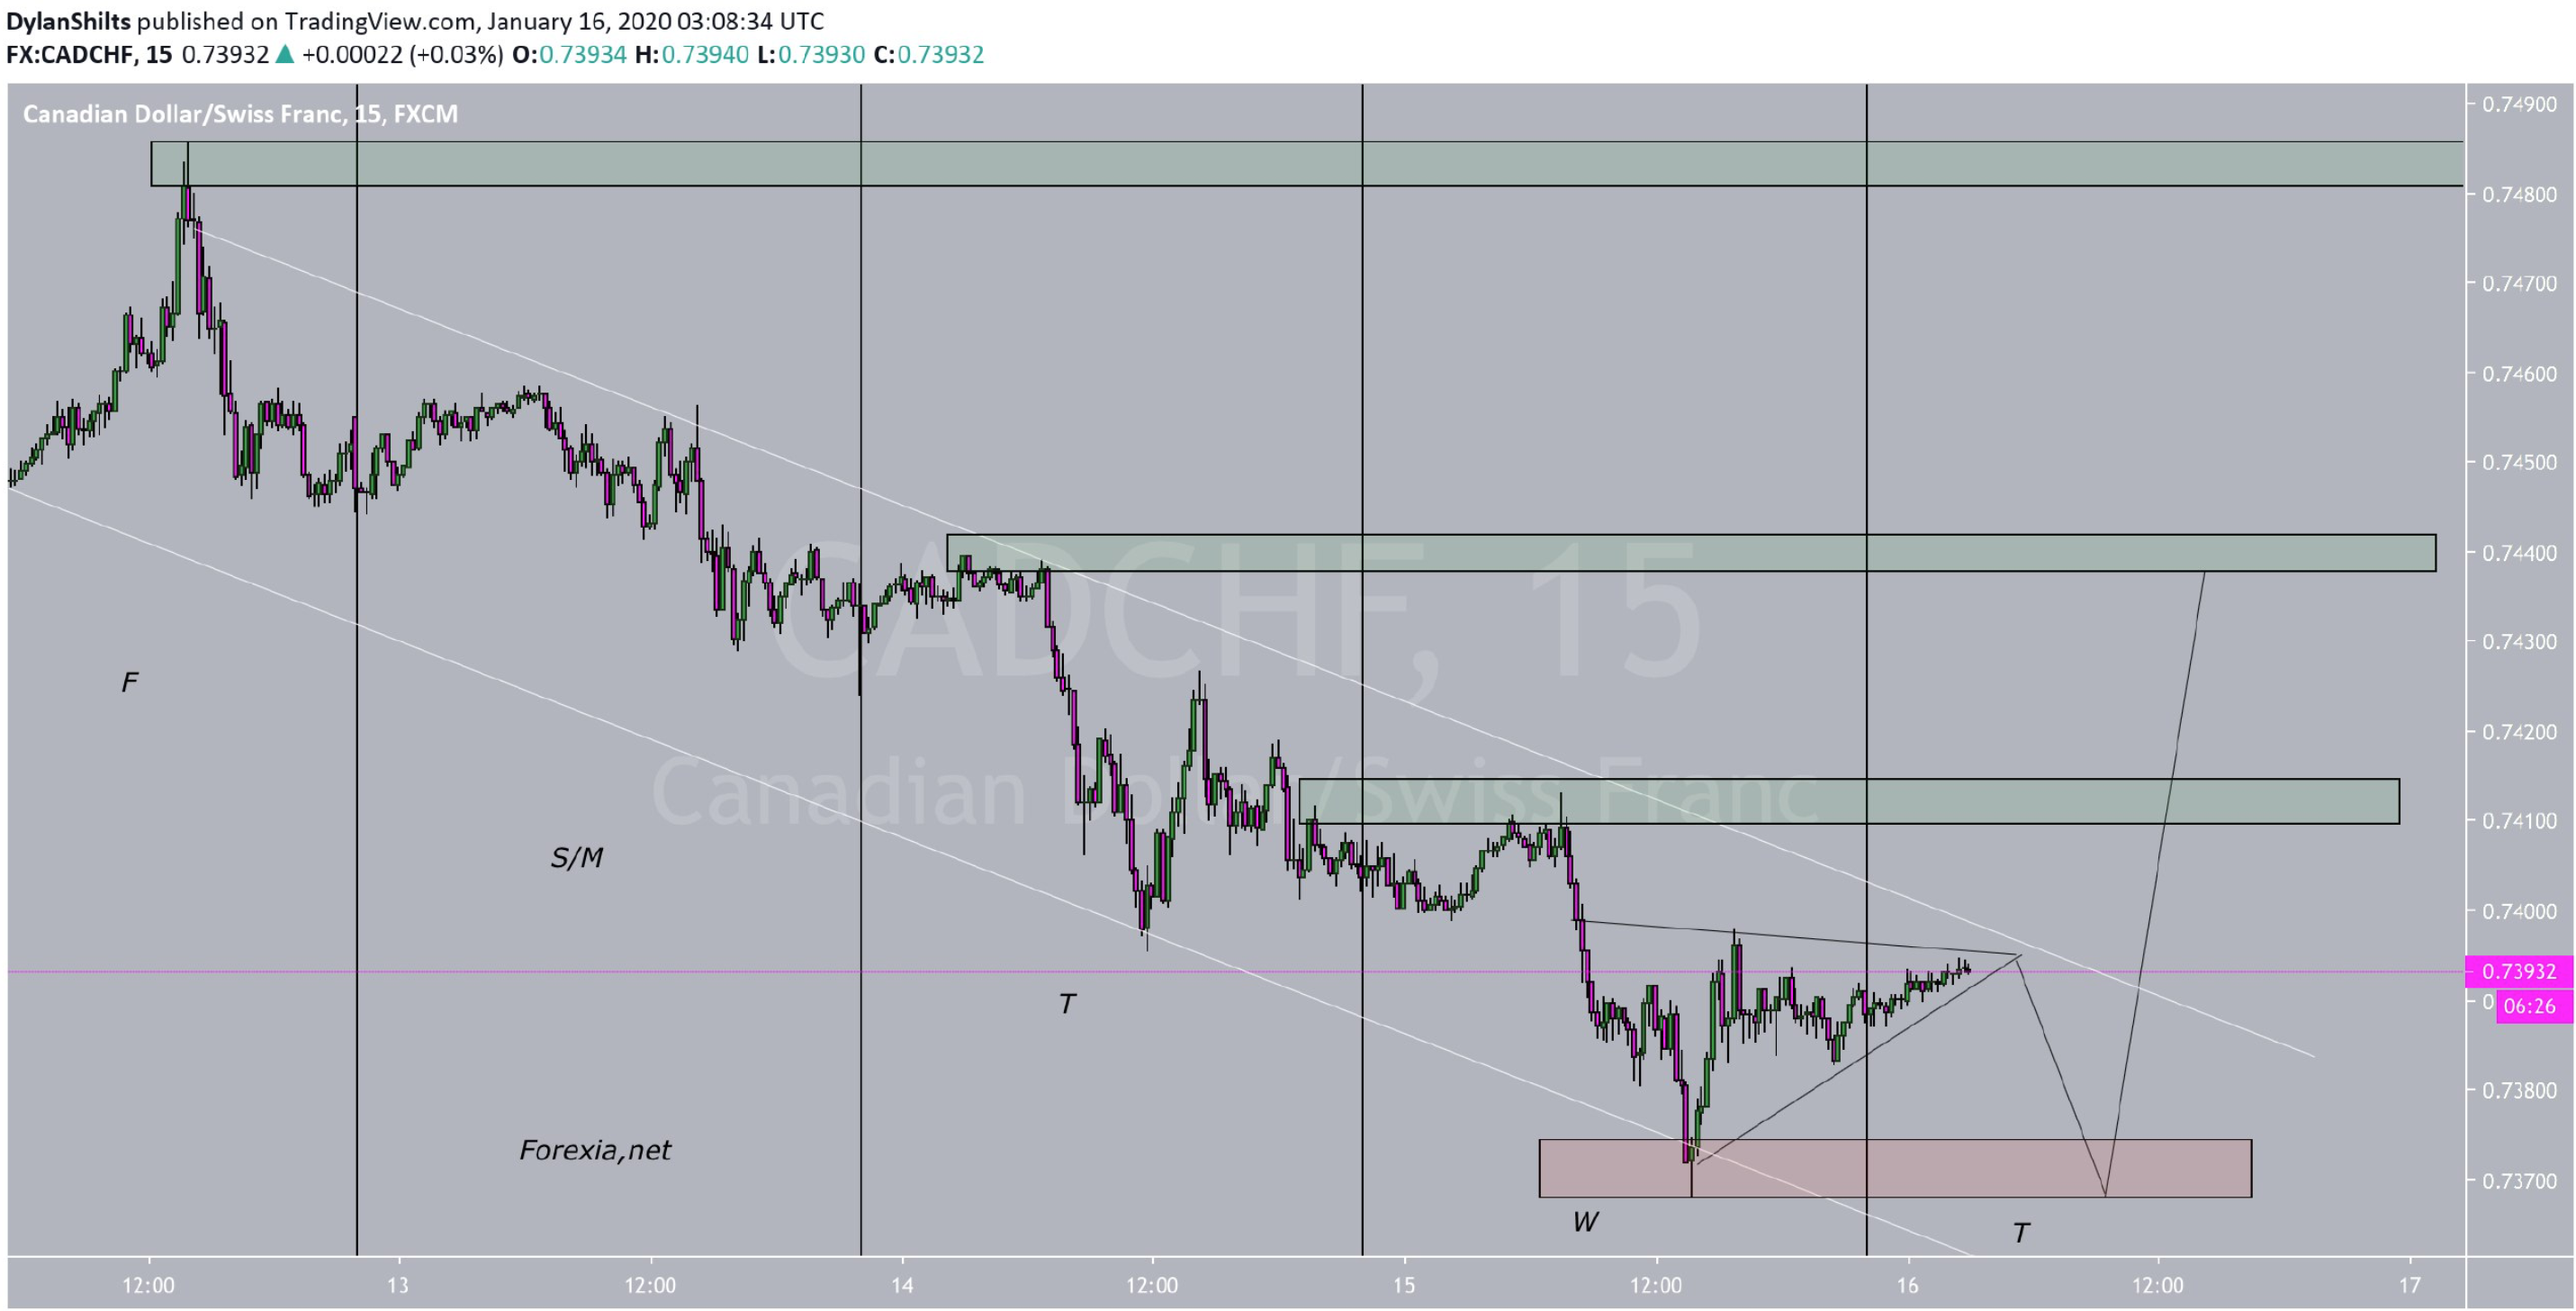 Possible #SignatureTrade on CADCHF